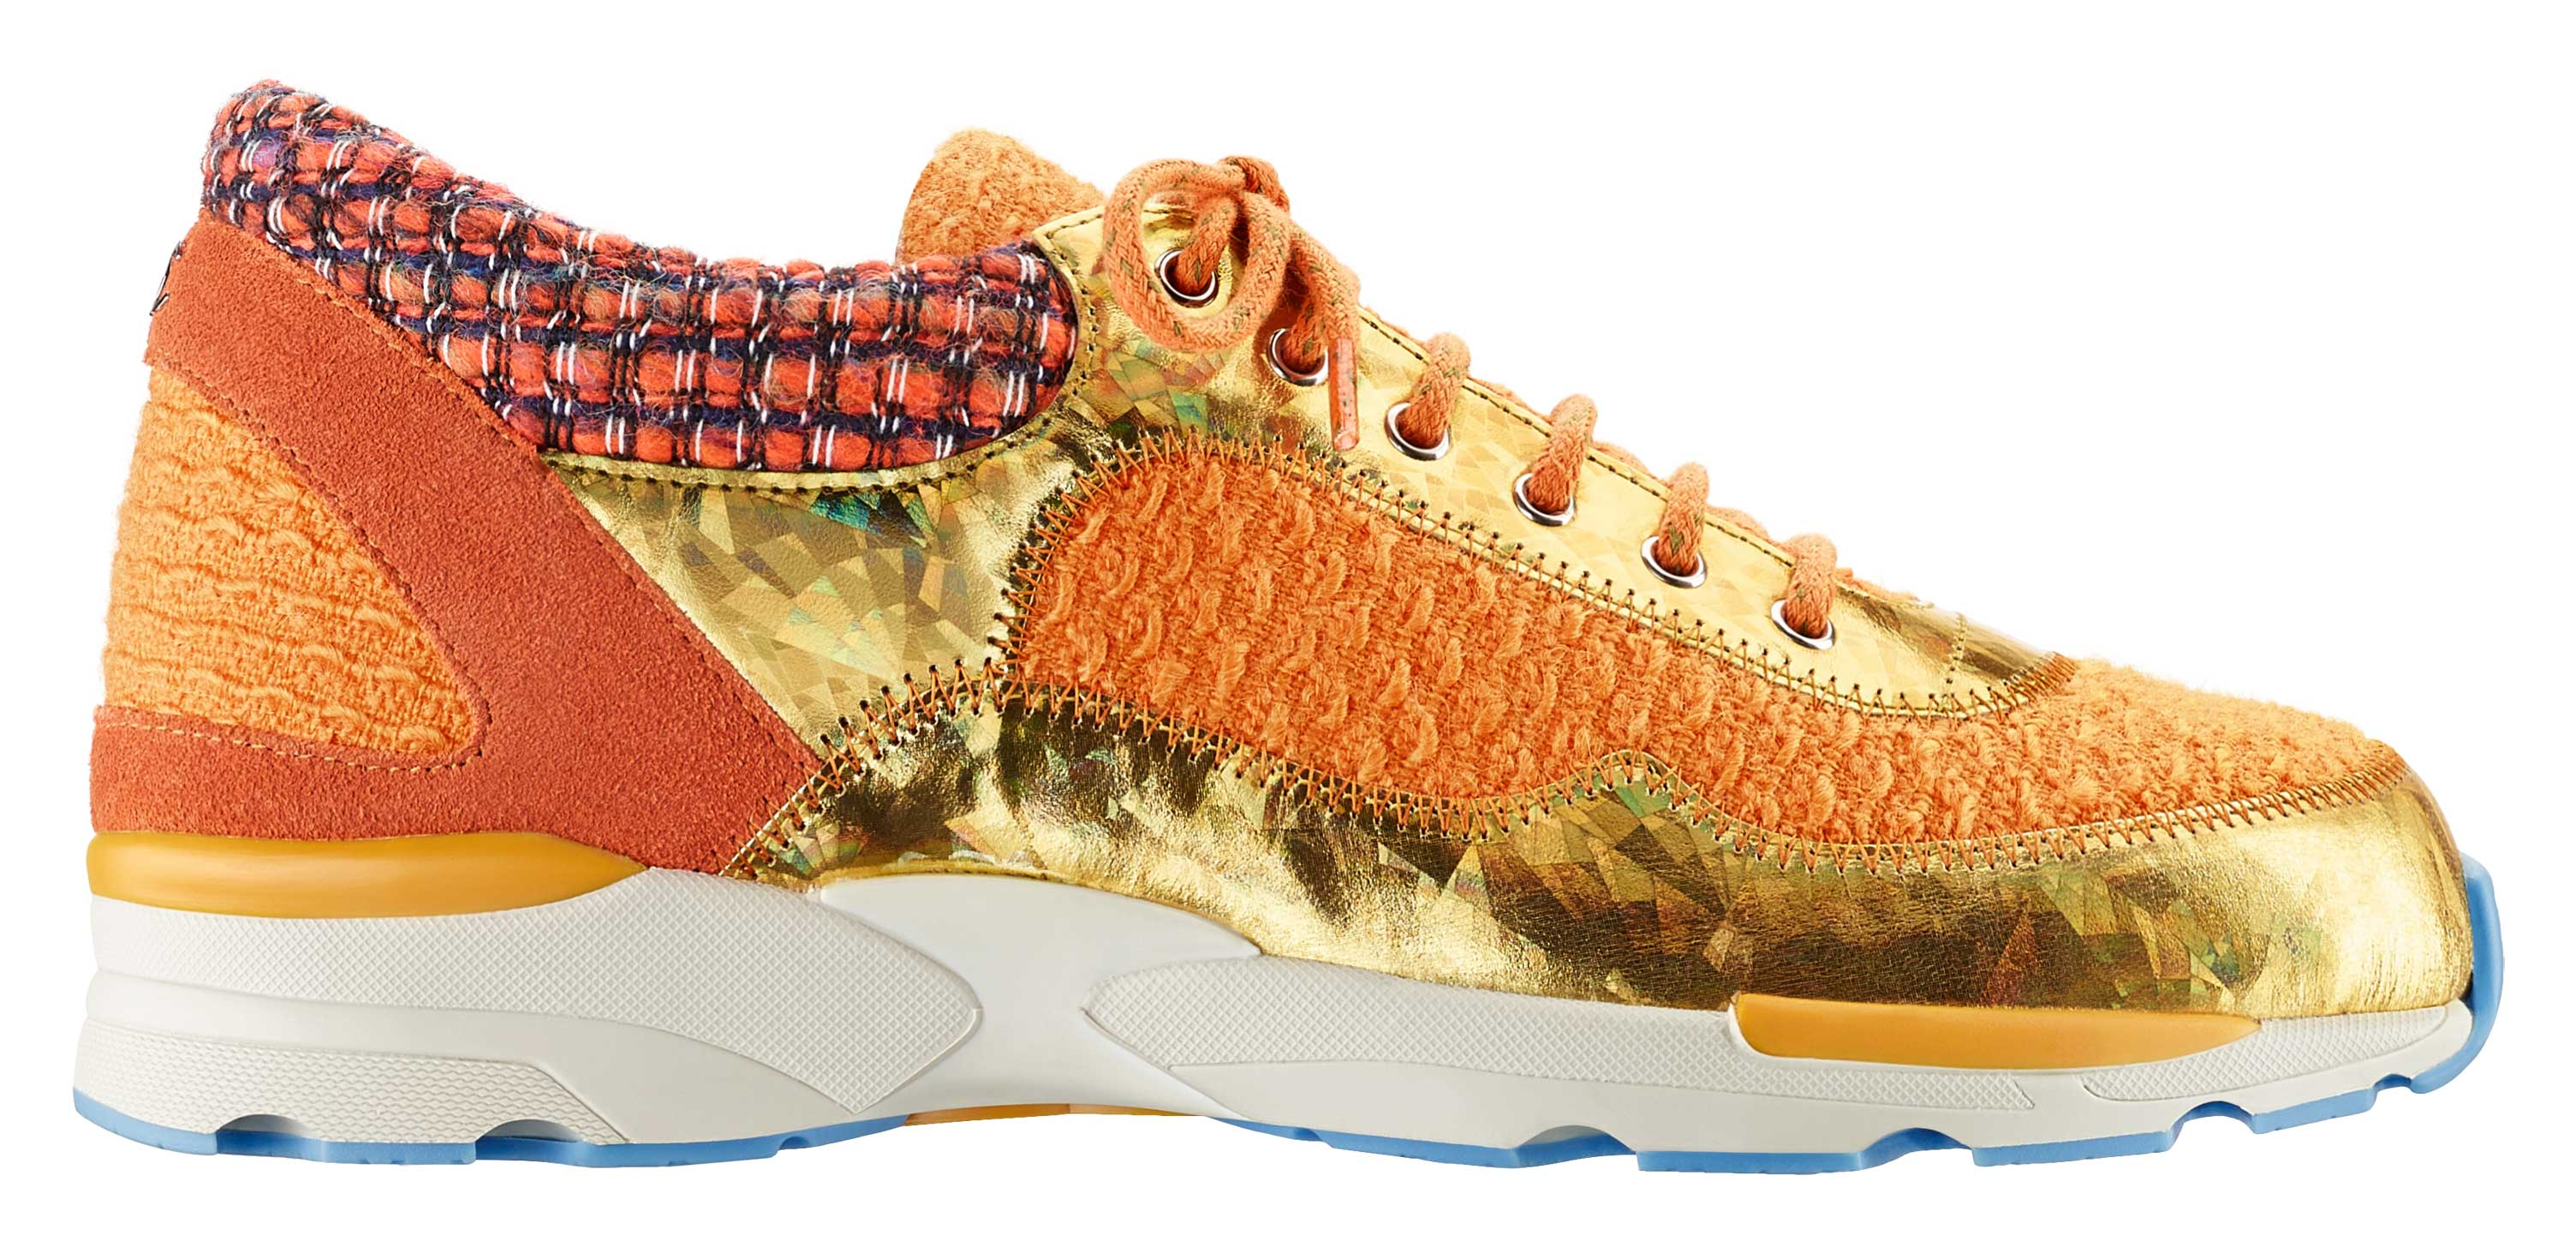 Orange-tweed,-suede-and-rubber-sneaker_Basket-orange-en-tweed,-daim-et-caoutchouc